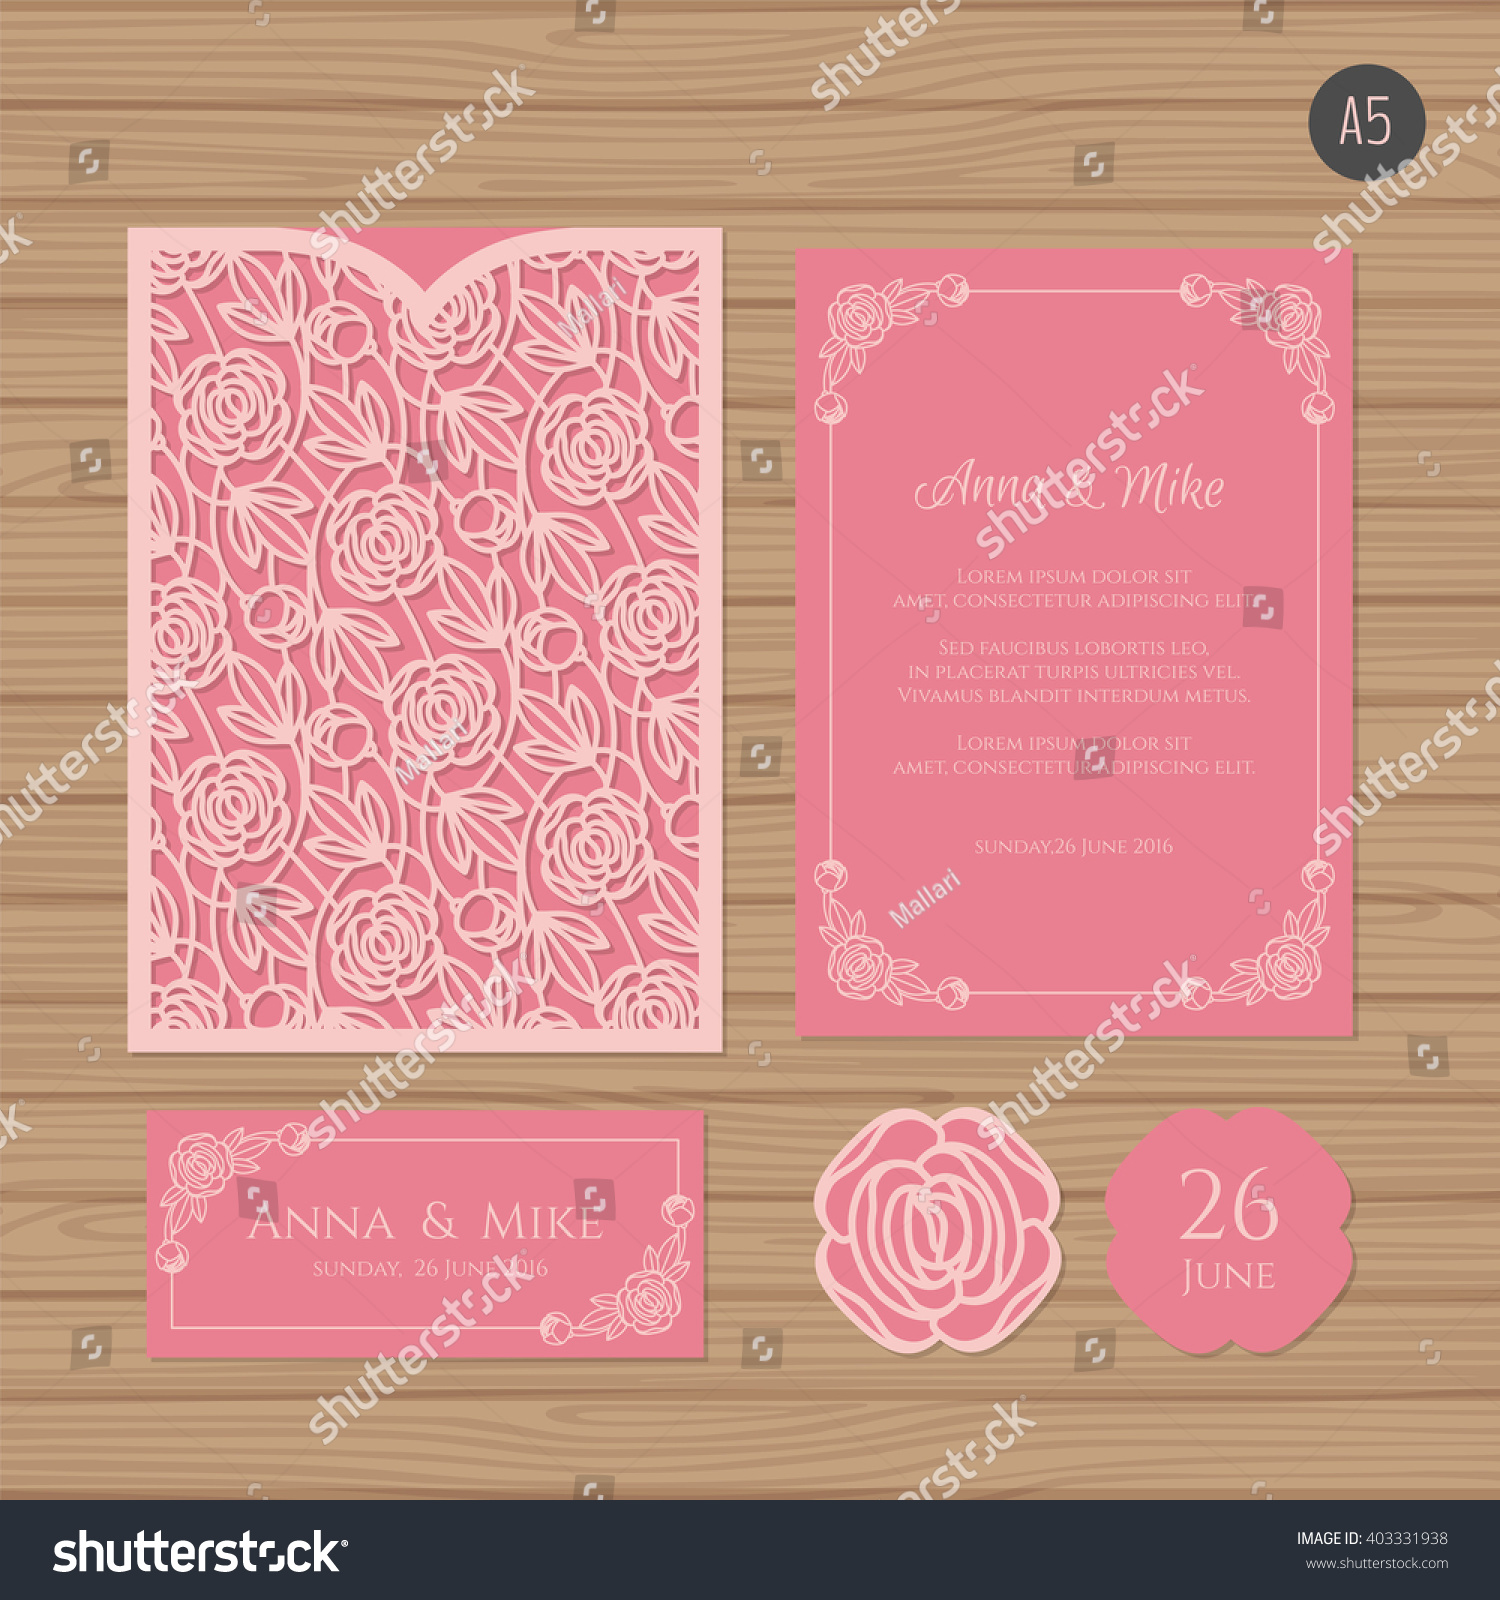 Wedding Invitation Greeting Card Floral Ornament Stock Vector